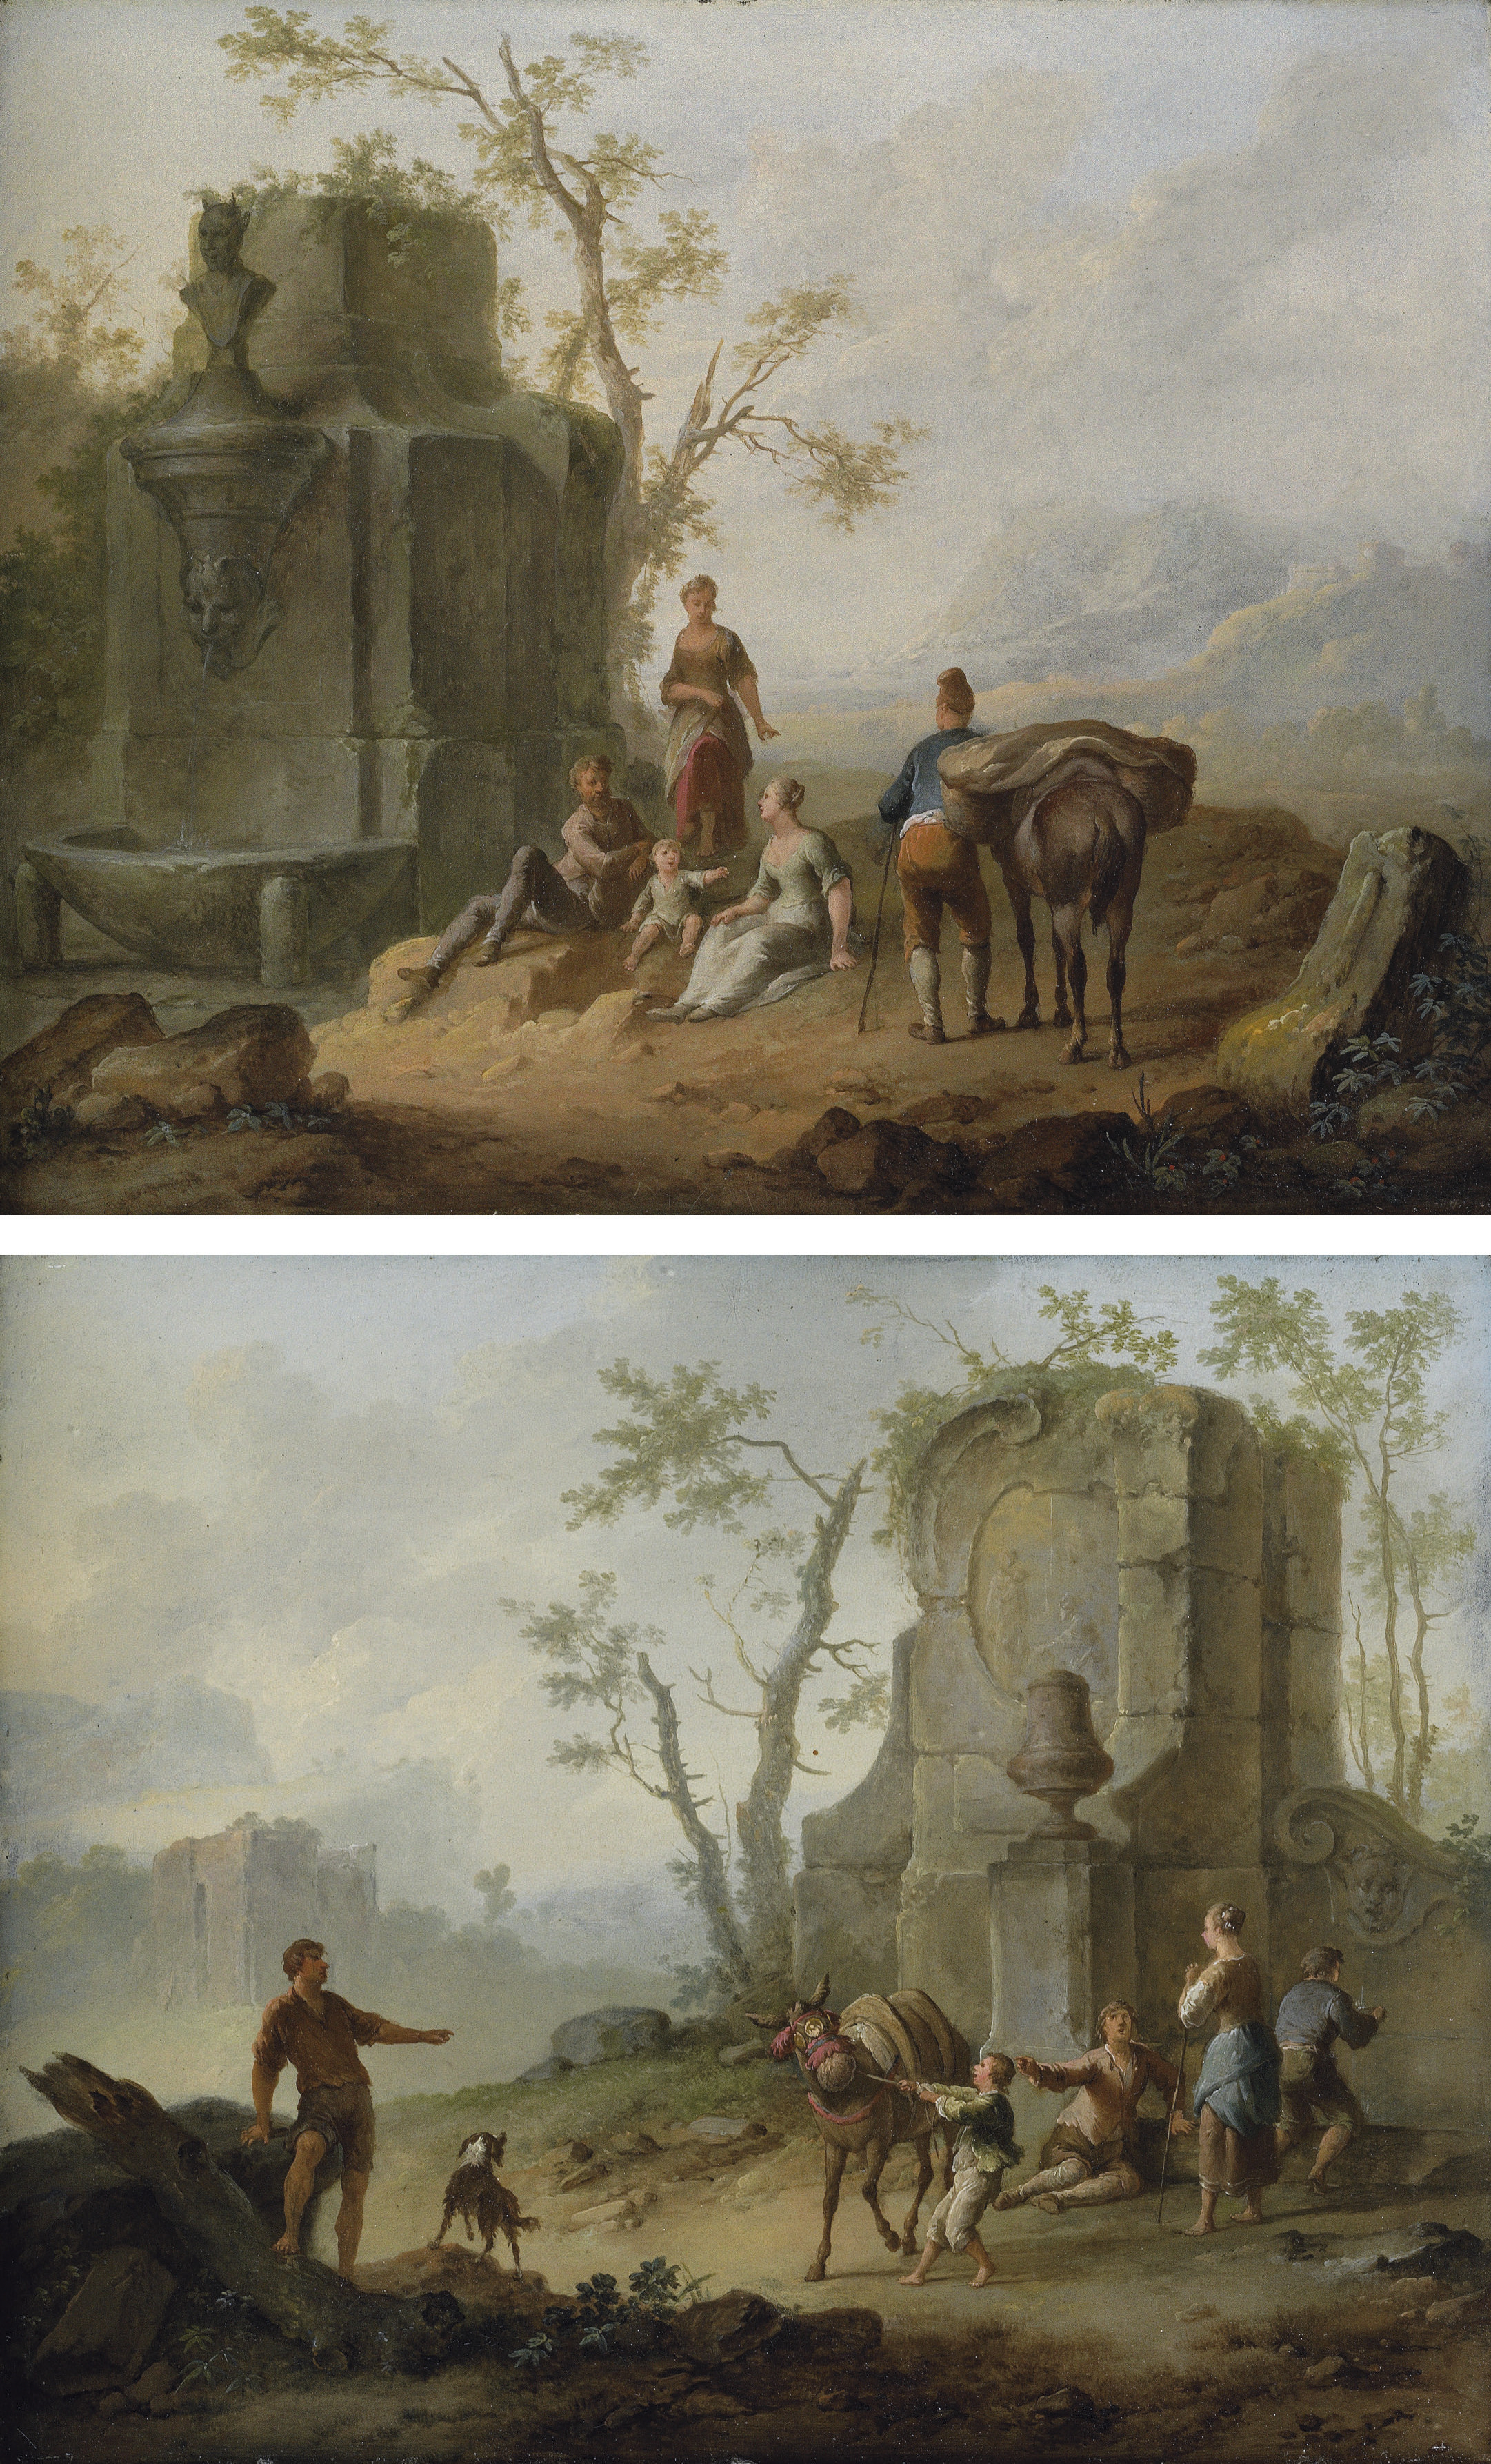 A classical landscape with a family resting by the ruins of a fountain, a man with a pack-donkey passing by; and A classical landscape with a family resting by the ruins, a boy struggling with an obstinate pack mule